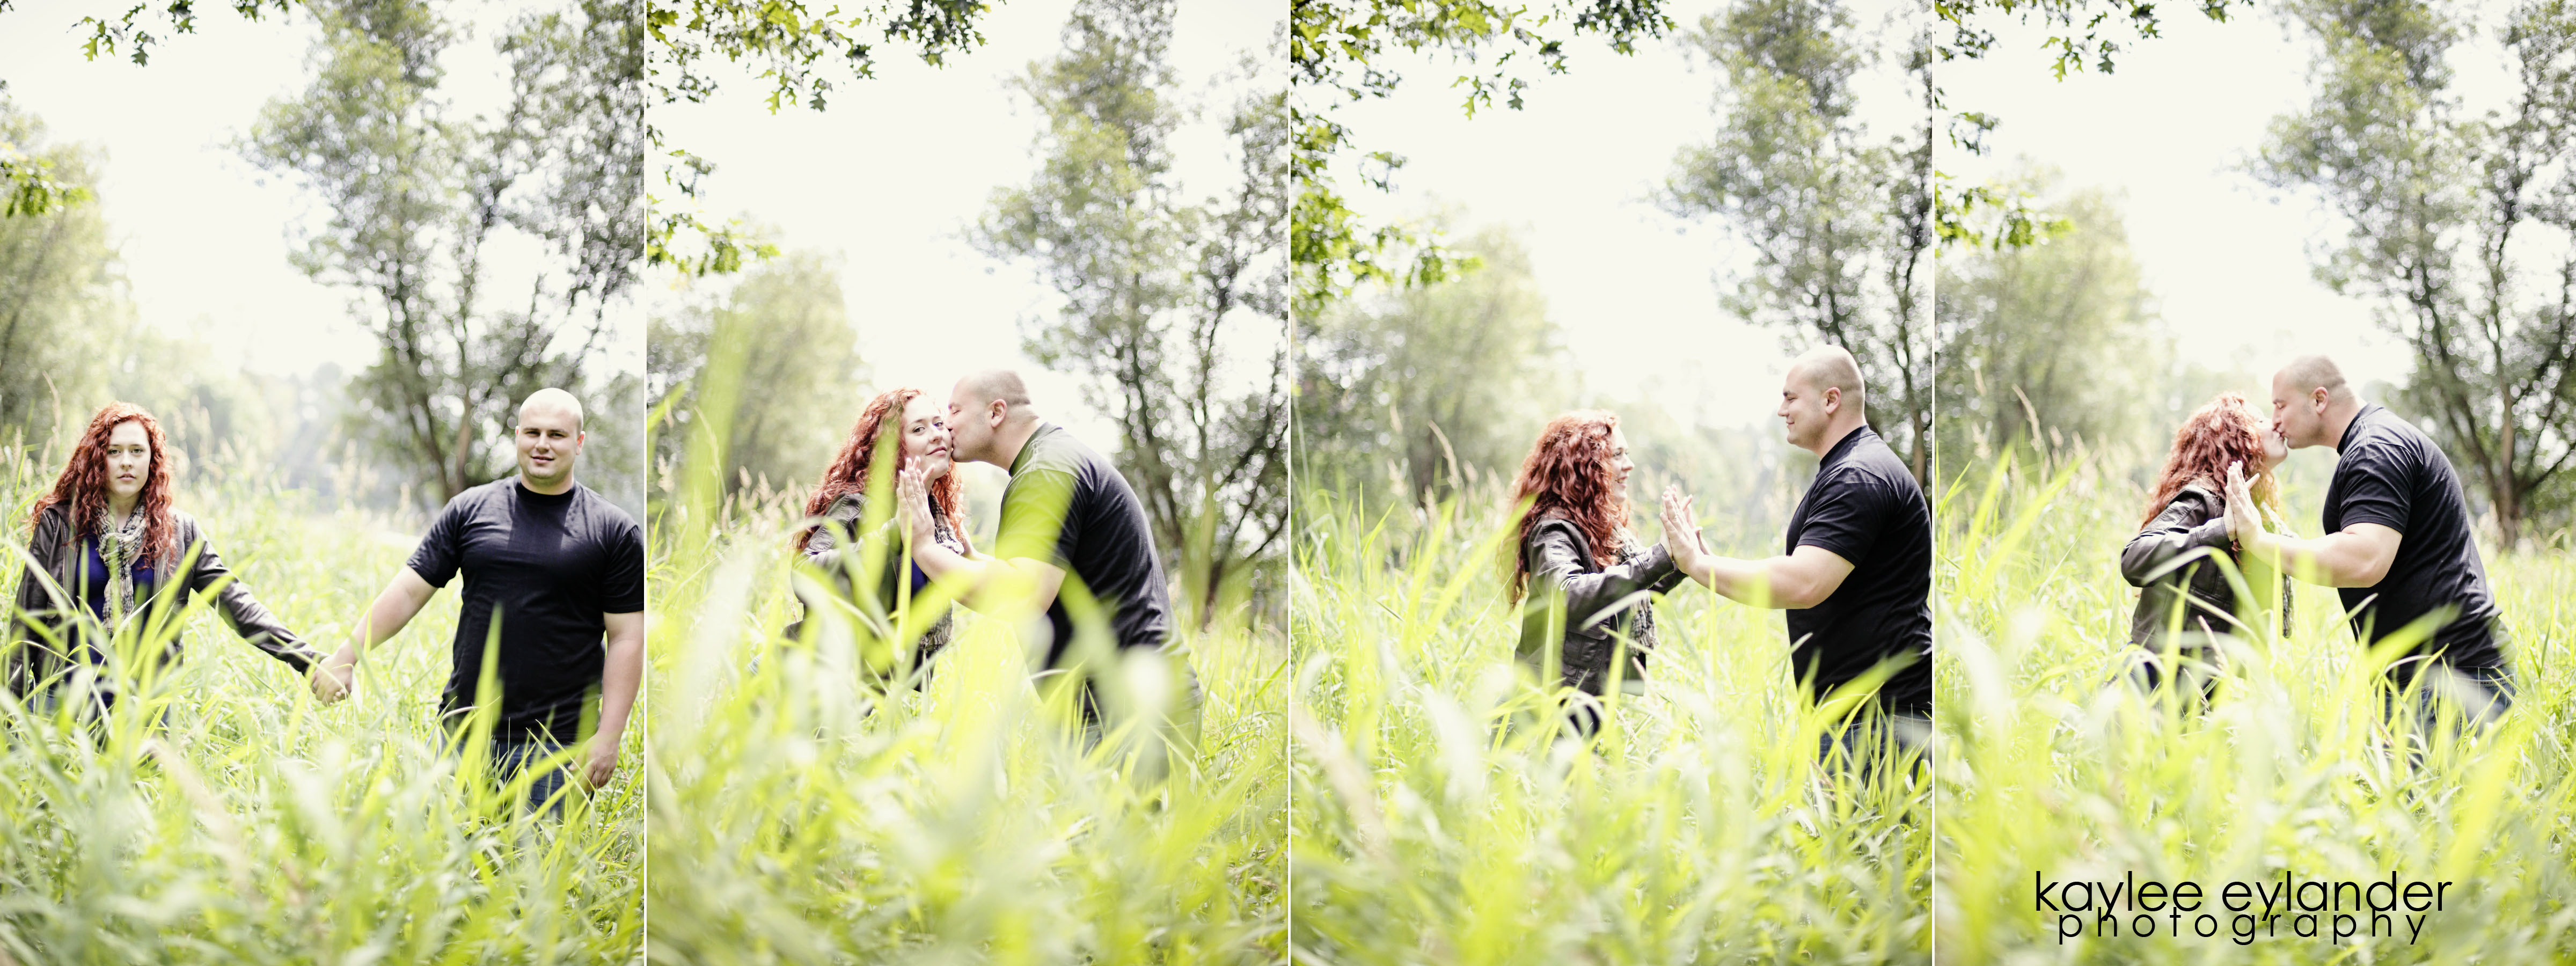 Meghann Rick 5 In The Trees| Engagement Session in the Forest | Eylander